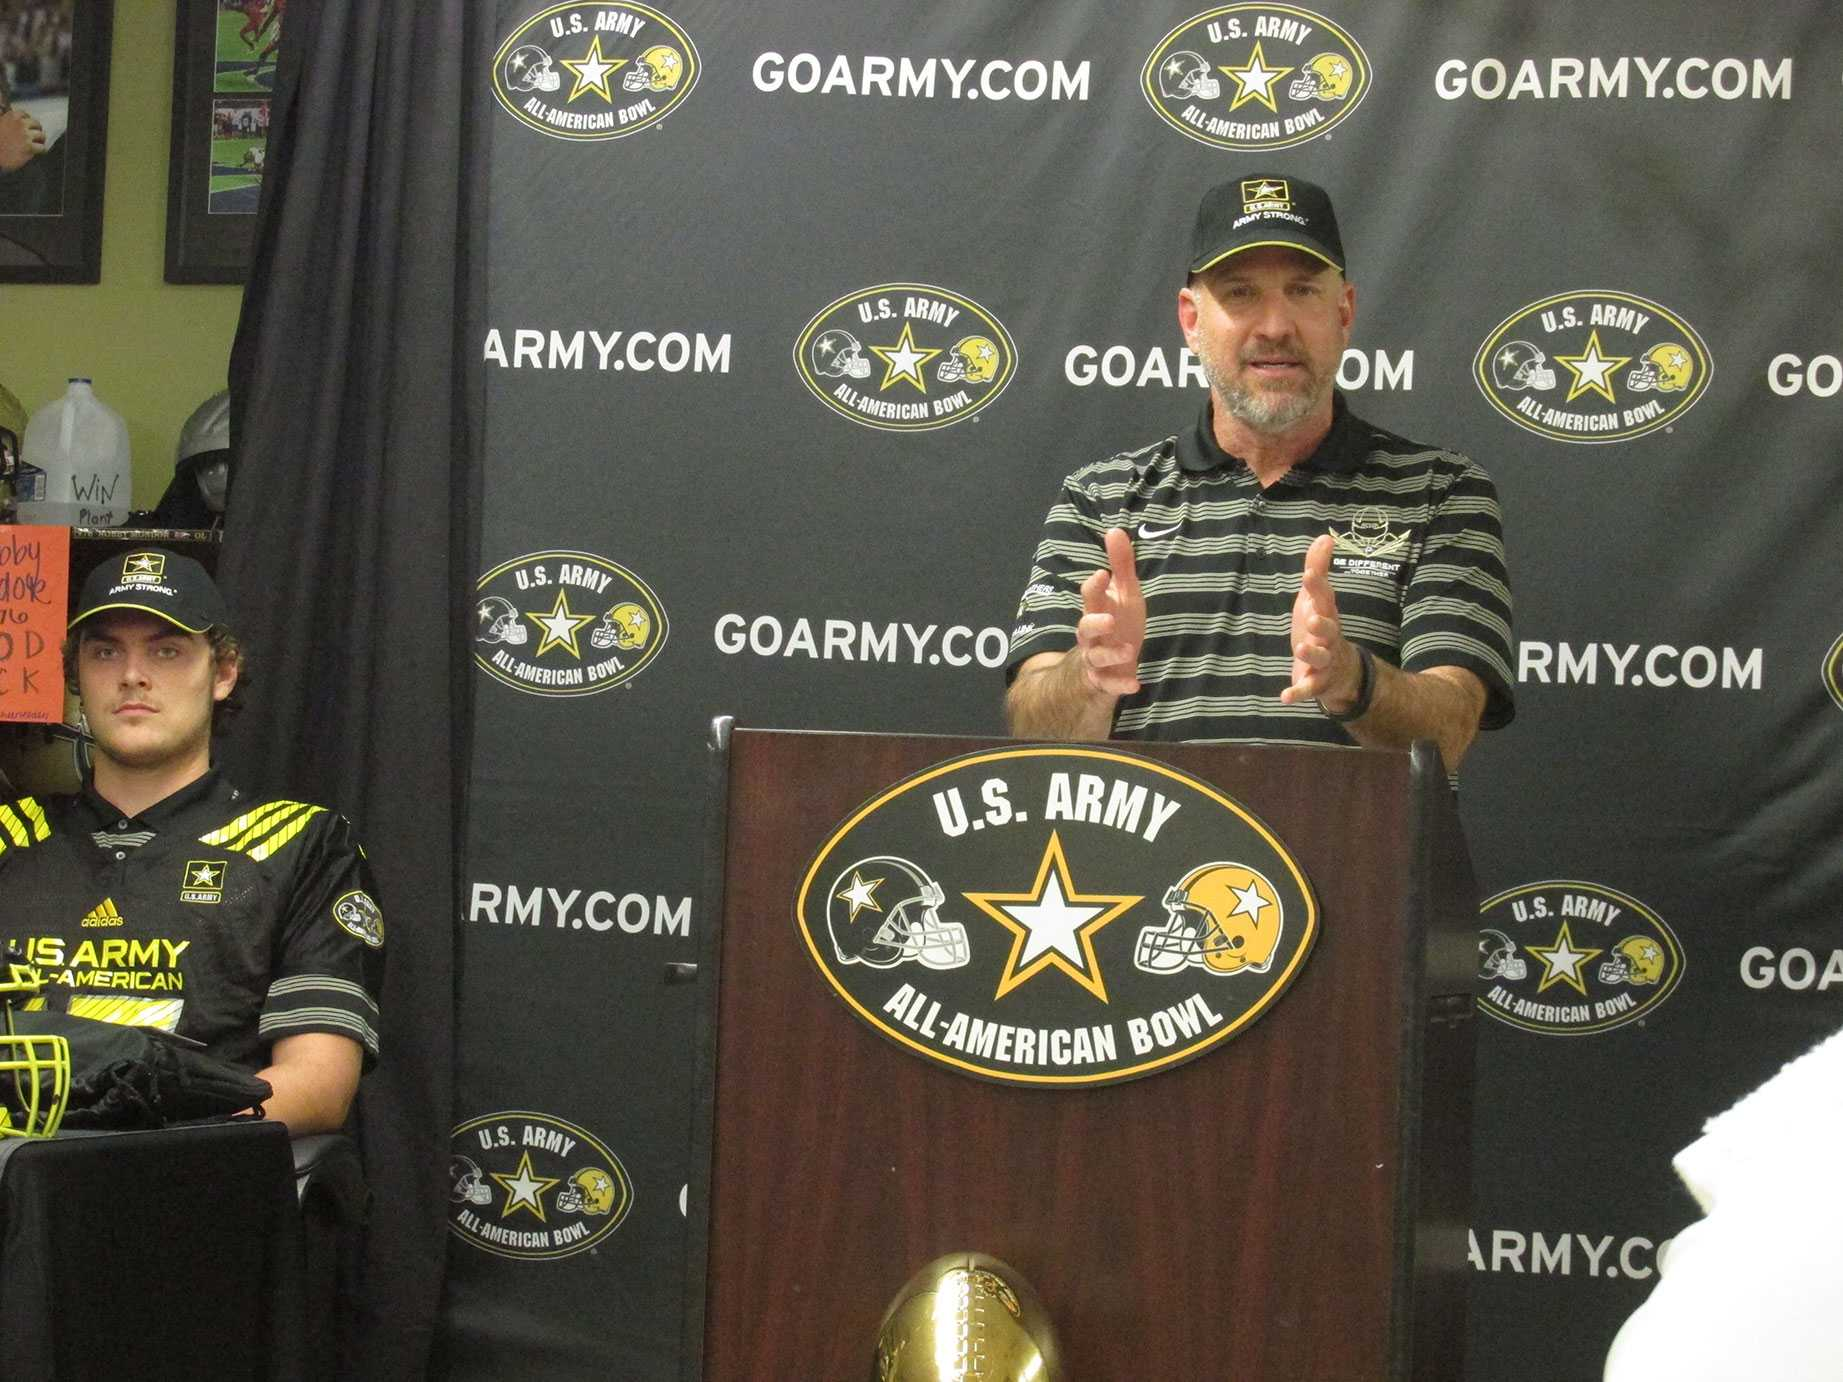 During his speech Coach Robert Weiner spoke highly of Jake Fruhmorgen. Fruhmorgen was selected to play in the U.S Army All-American Bowl